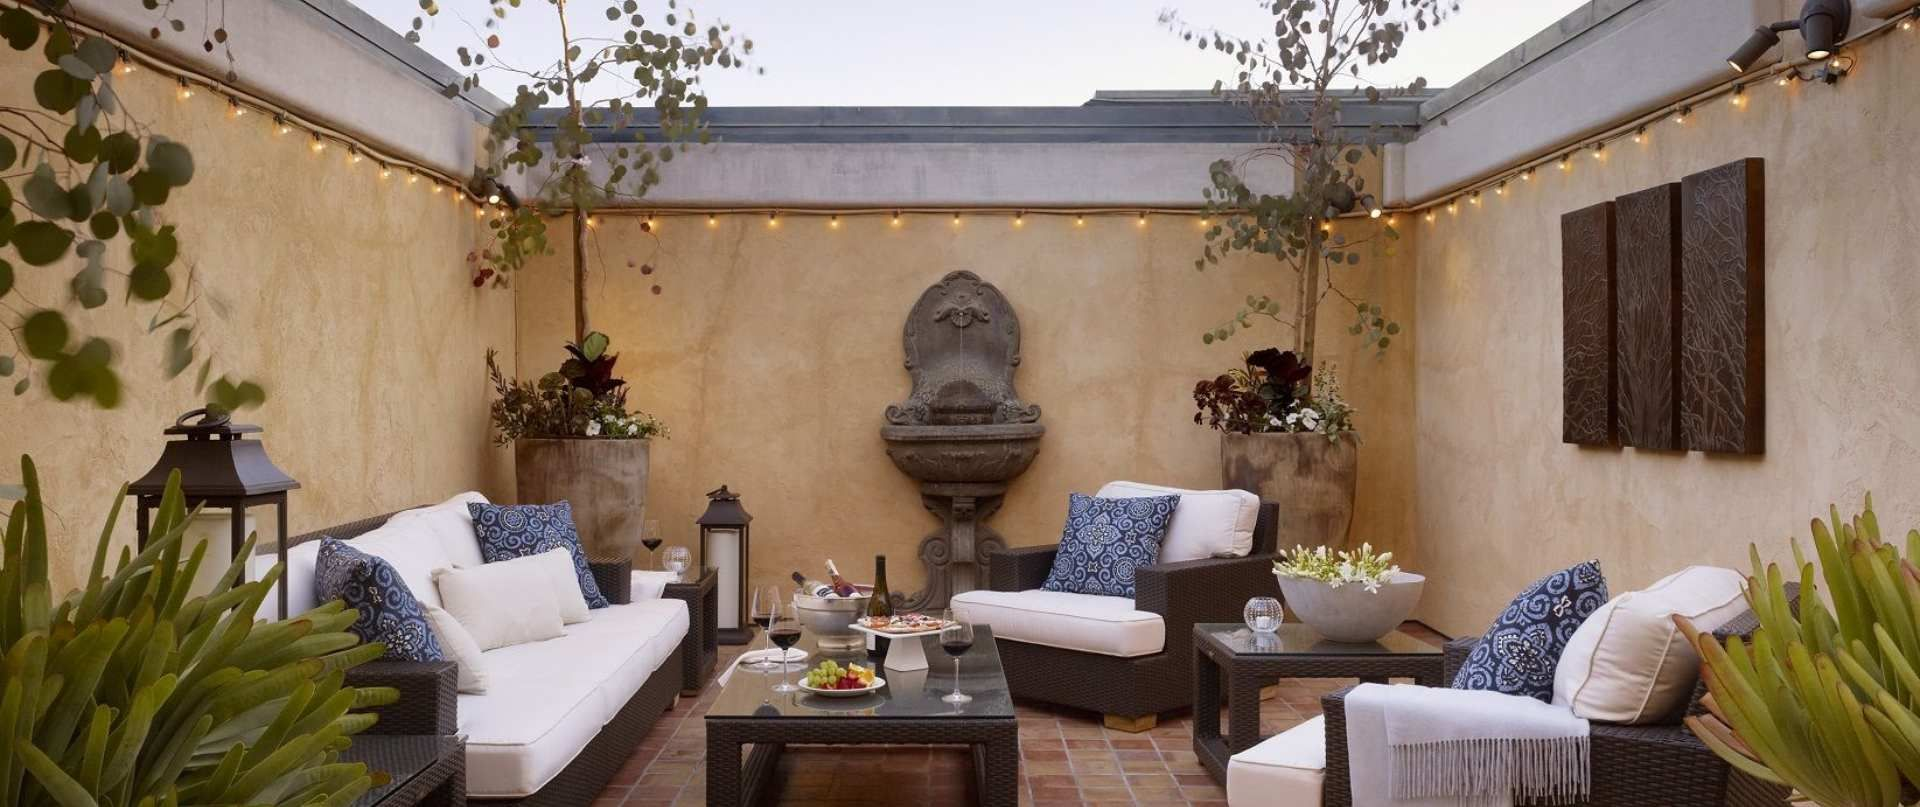 A Luxury Boutique Hotel In Downtown Palo Alto Ca Garden Court United States Of America